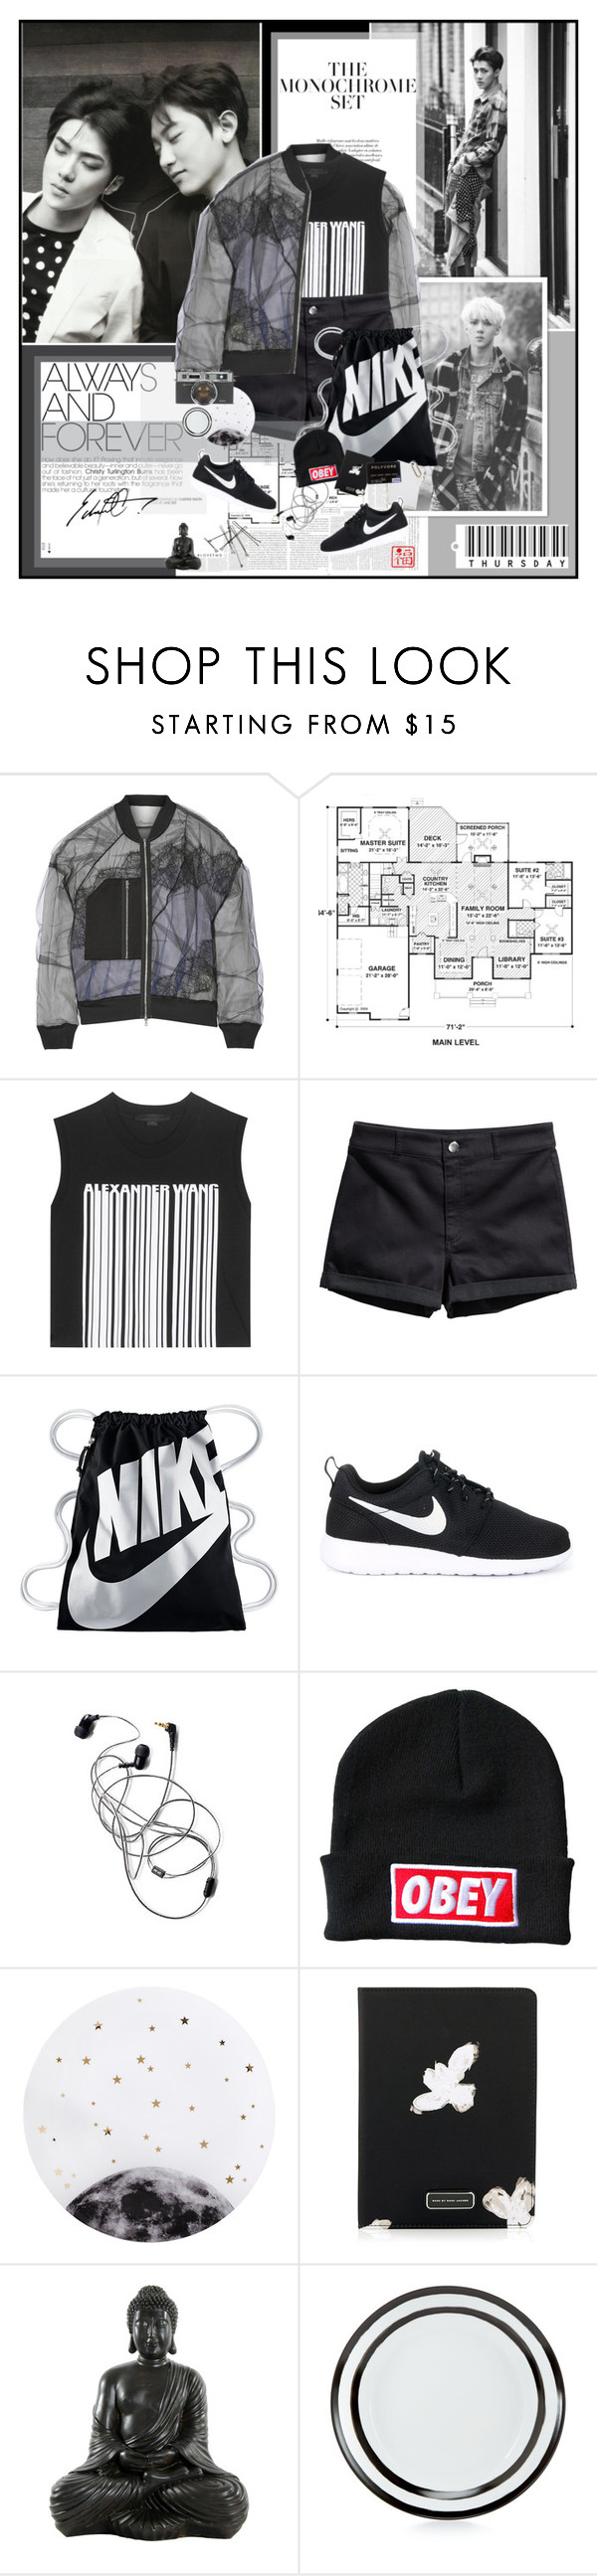 """Chapter 14: Wildest Dreams"" by summervintage ❤ liked on Polyvore featuring 3.1 Phillip Lim, Alexander Wang, H&M, NIKE, OBEY Clothing, Lollipop, Marc by Marc Jacobs, Martha Stewart and bathroom"